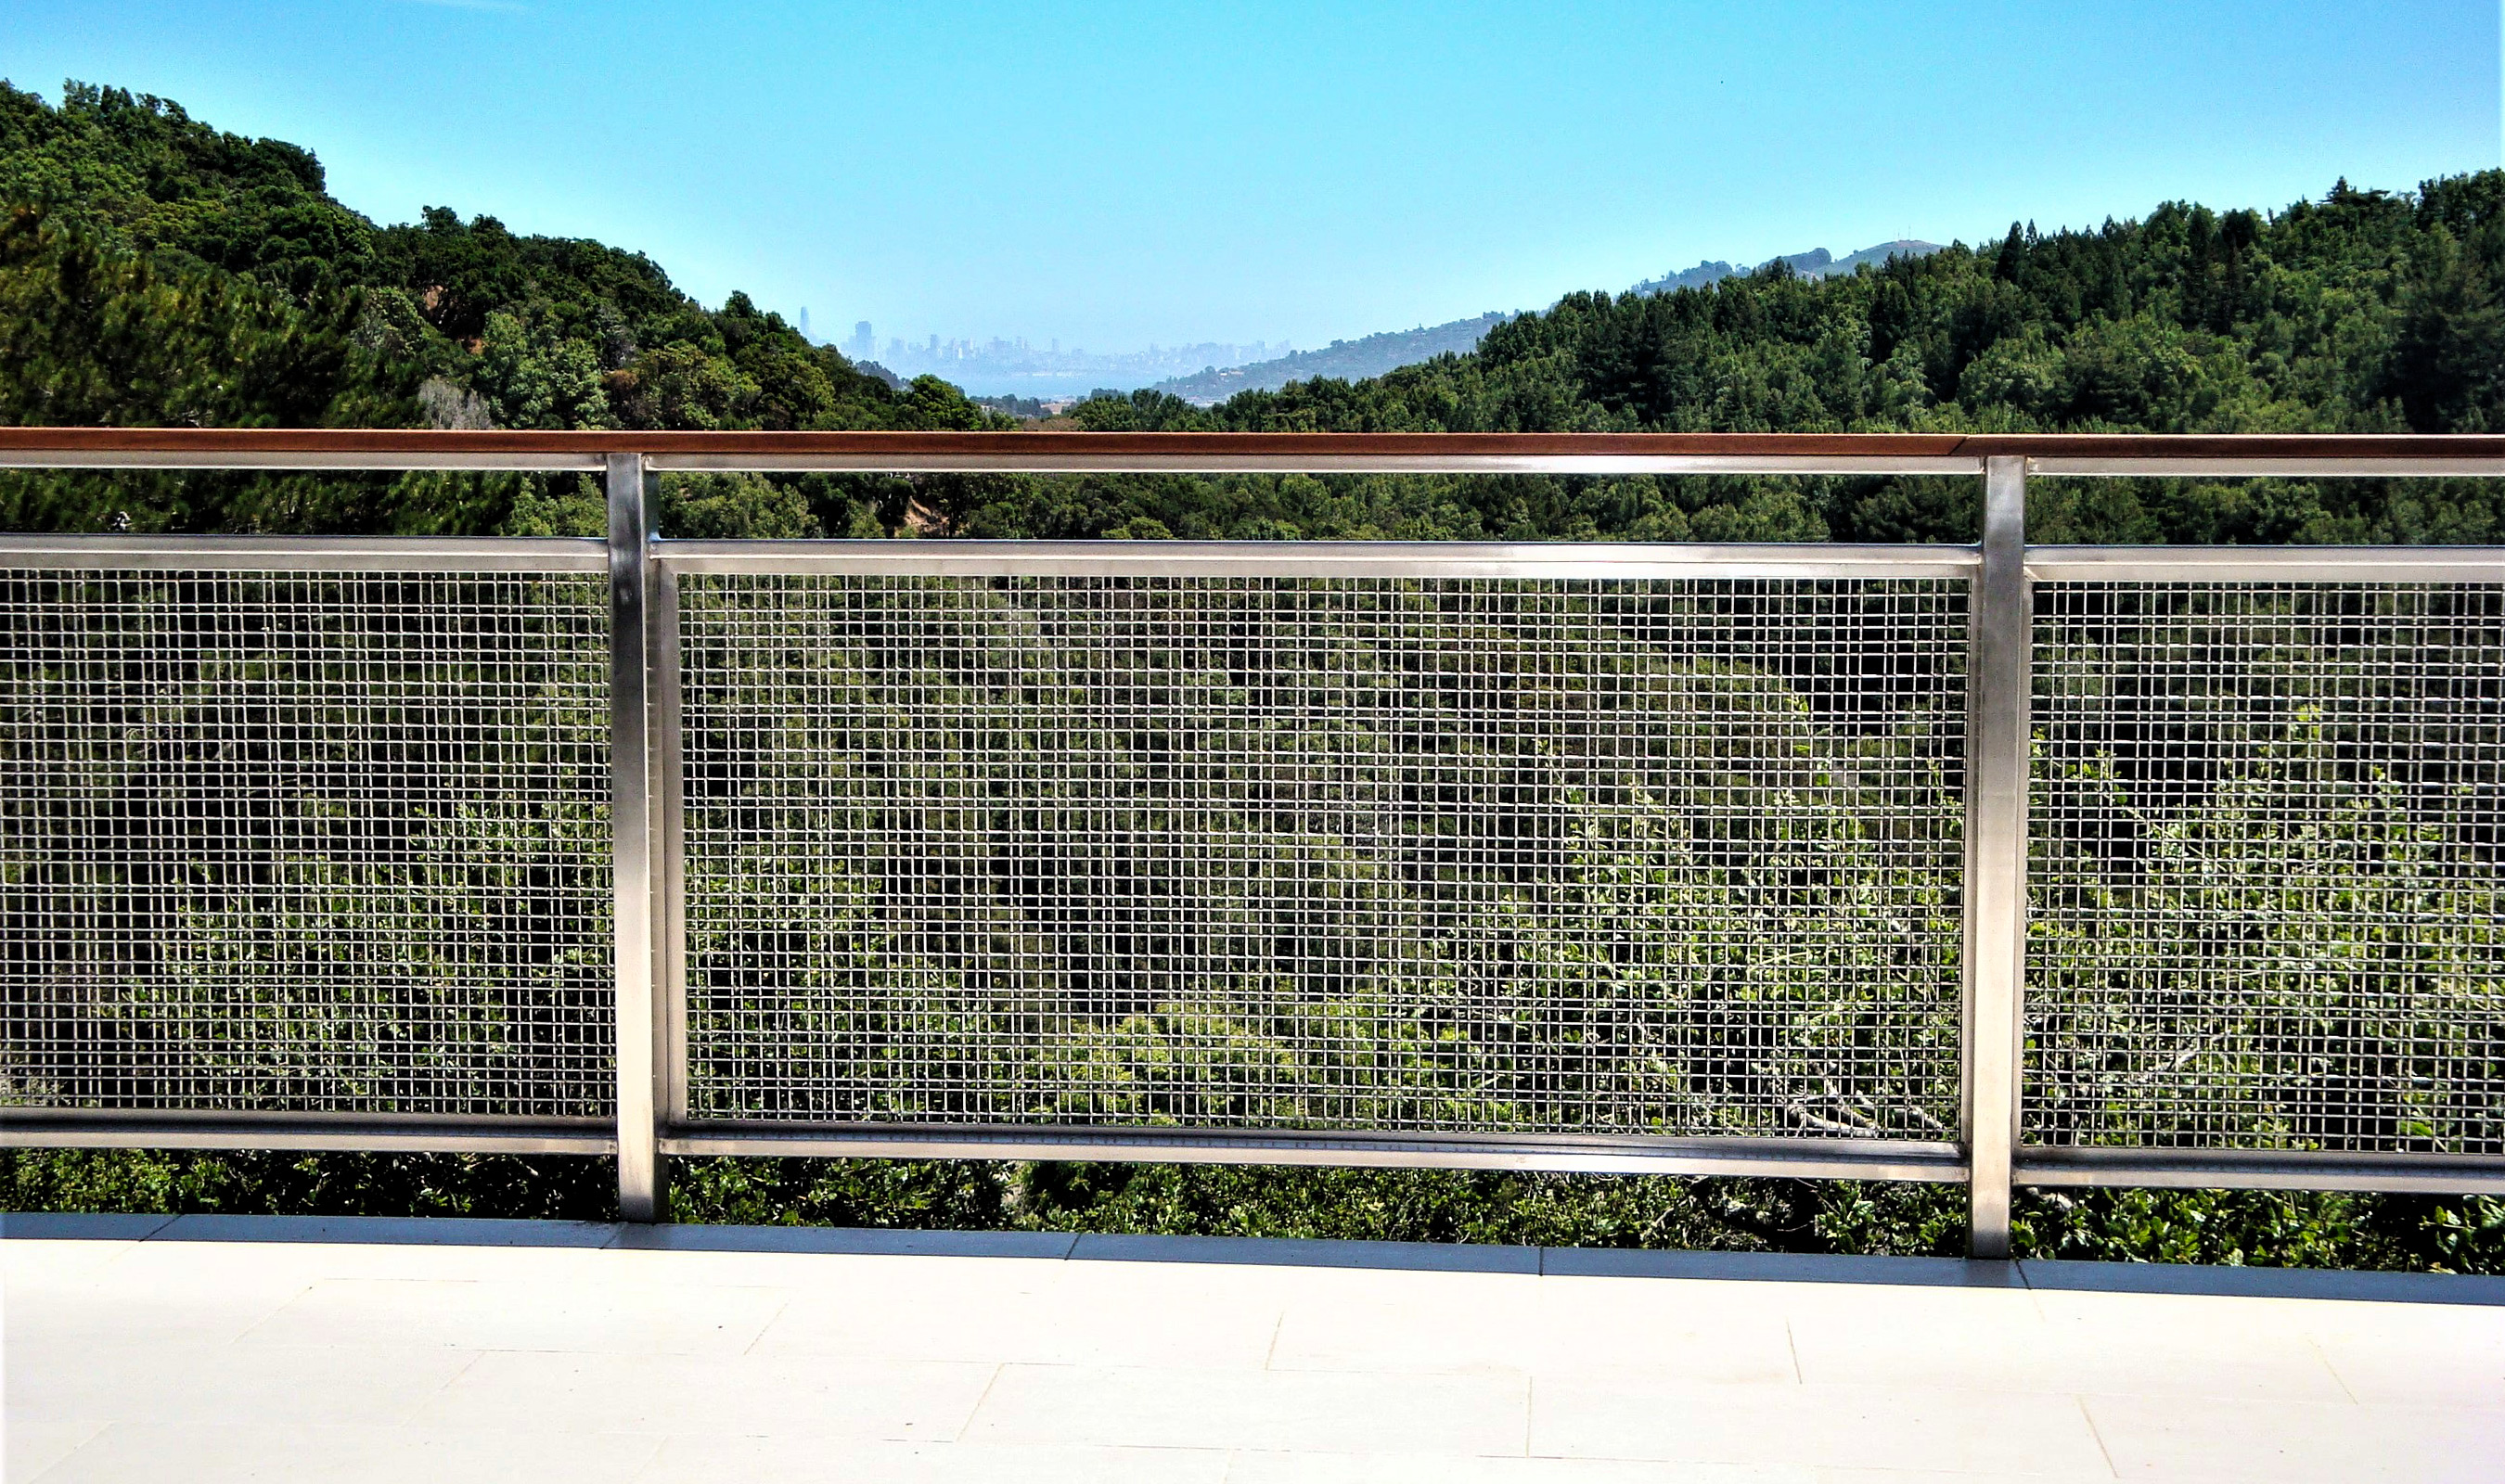 SJD-2 Stainless Steel wire mesh railing infill panel